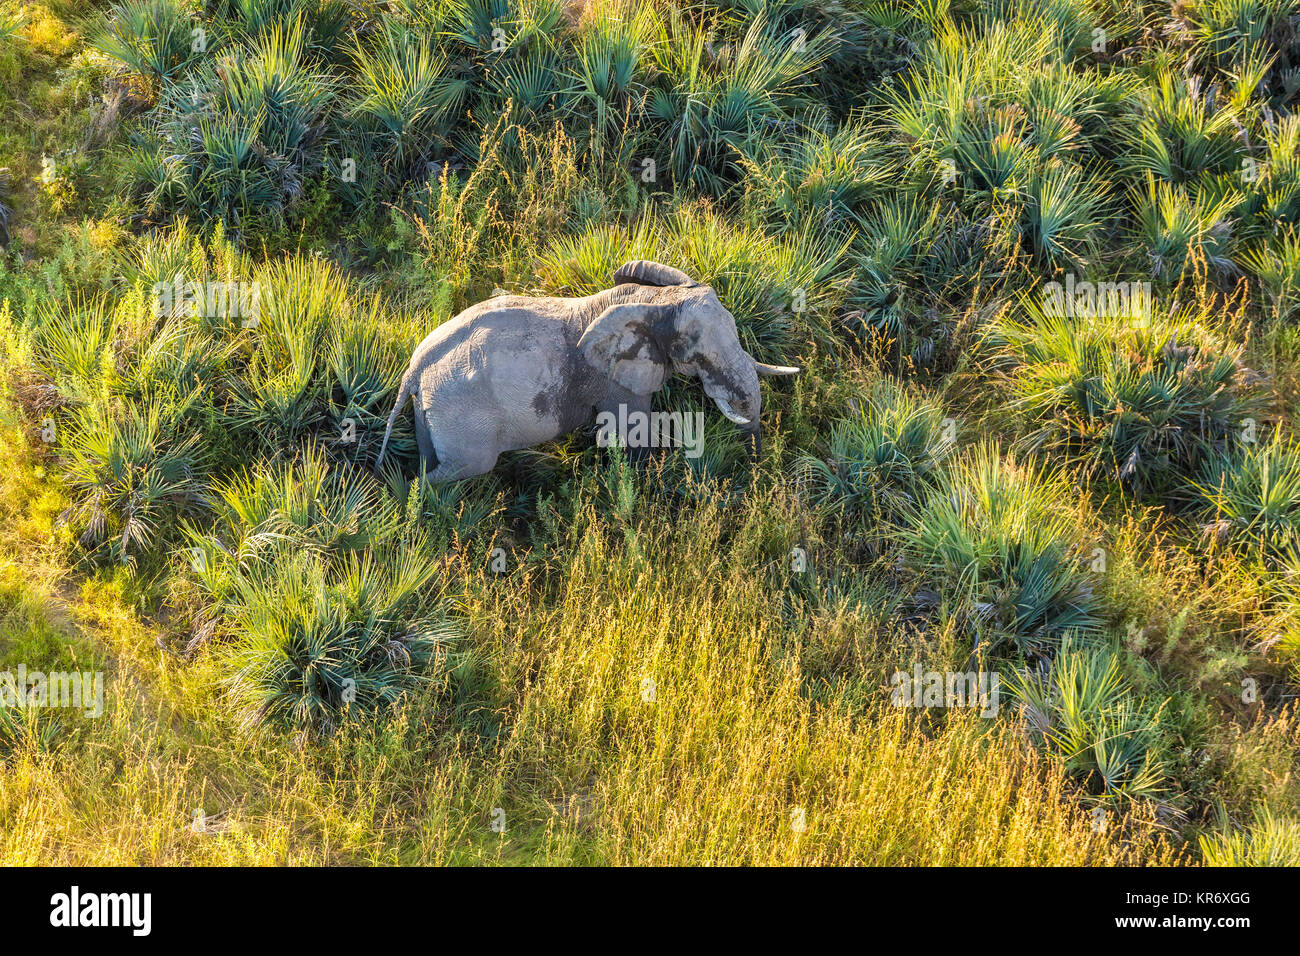 Aerial view of African Elephant standing in lush delta. - Stock Image